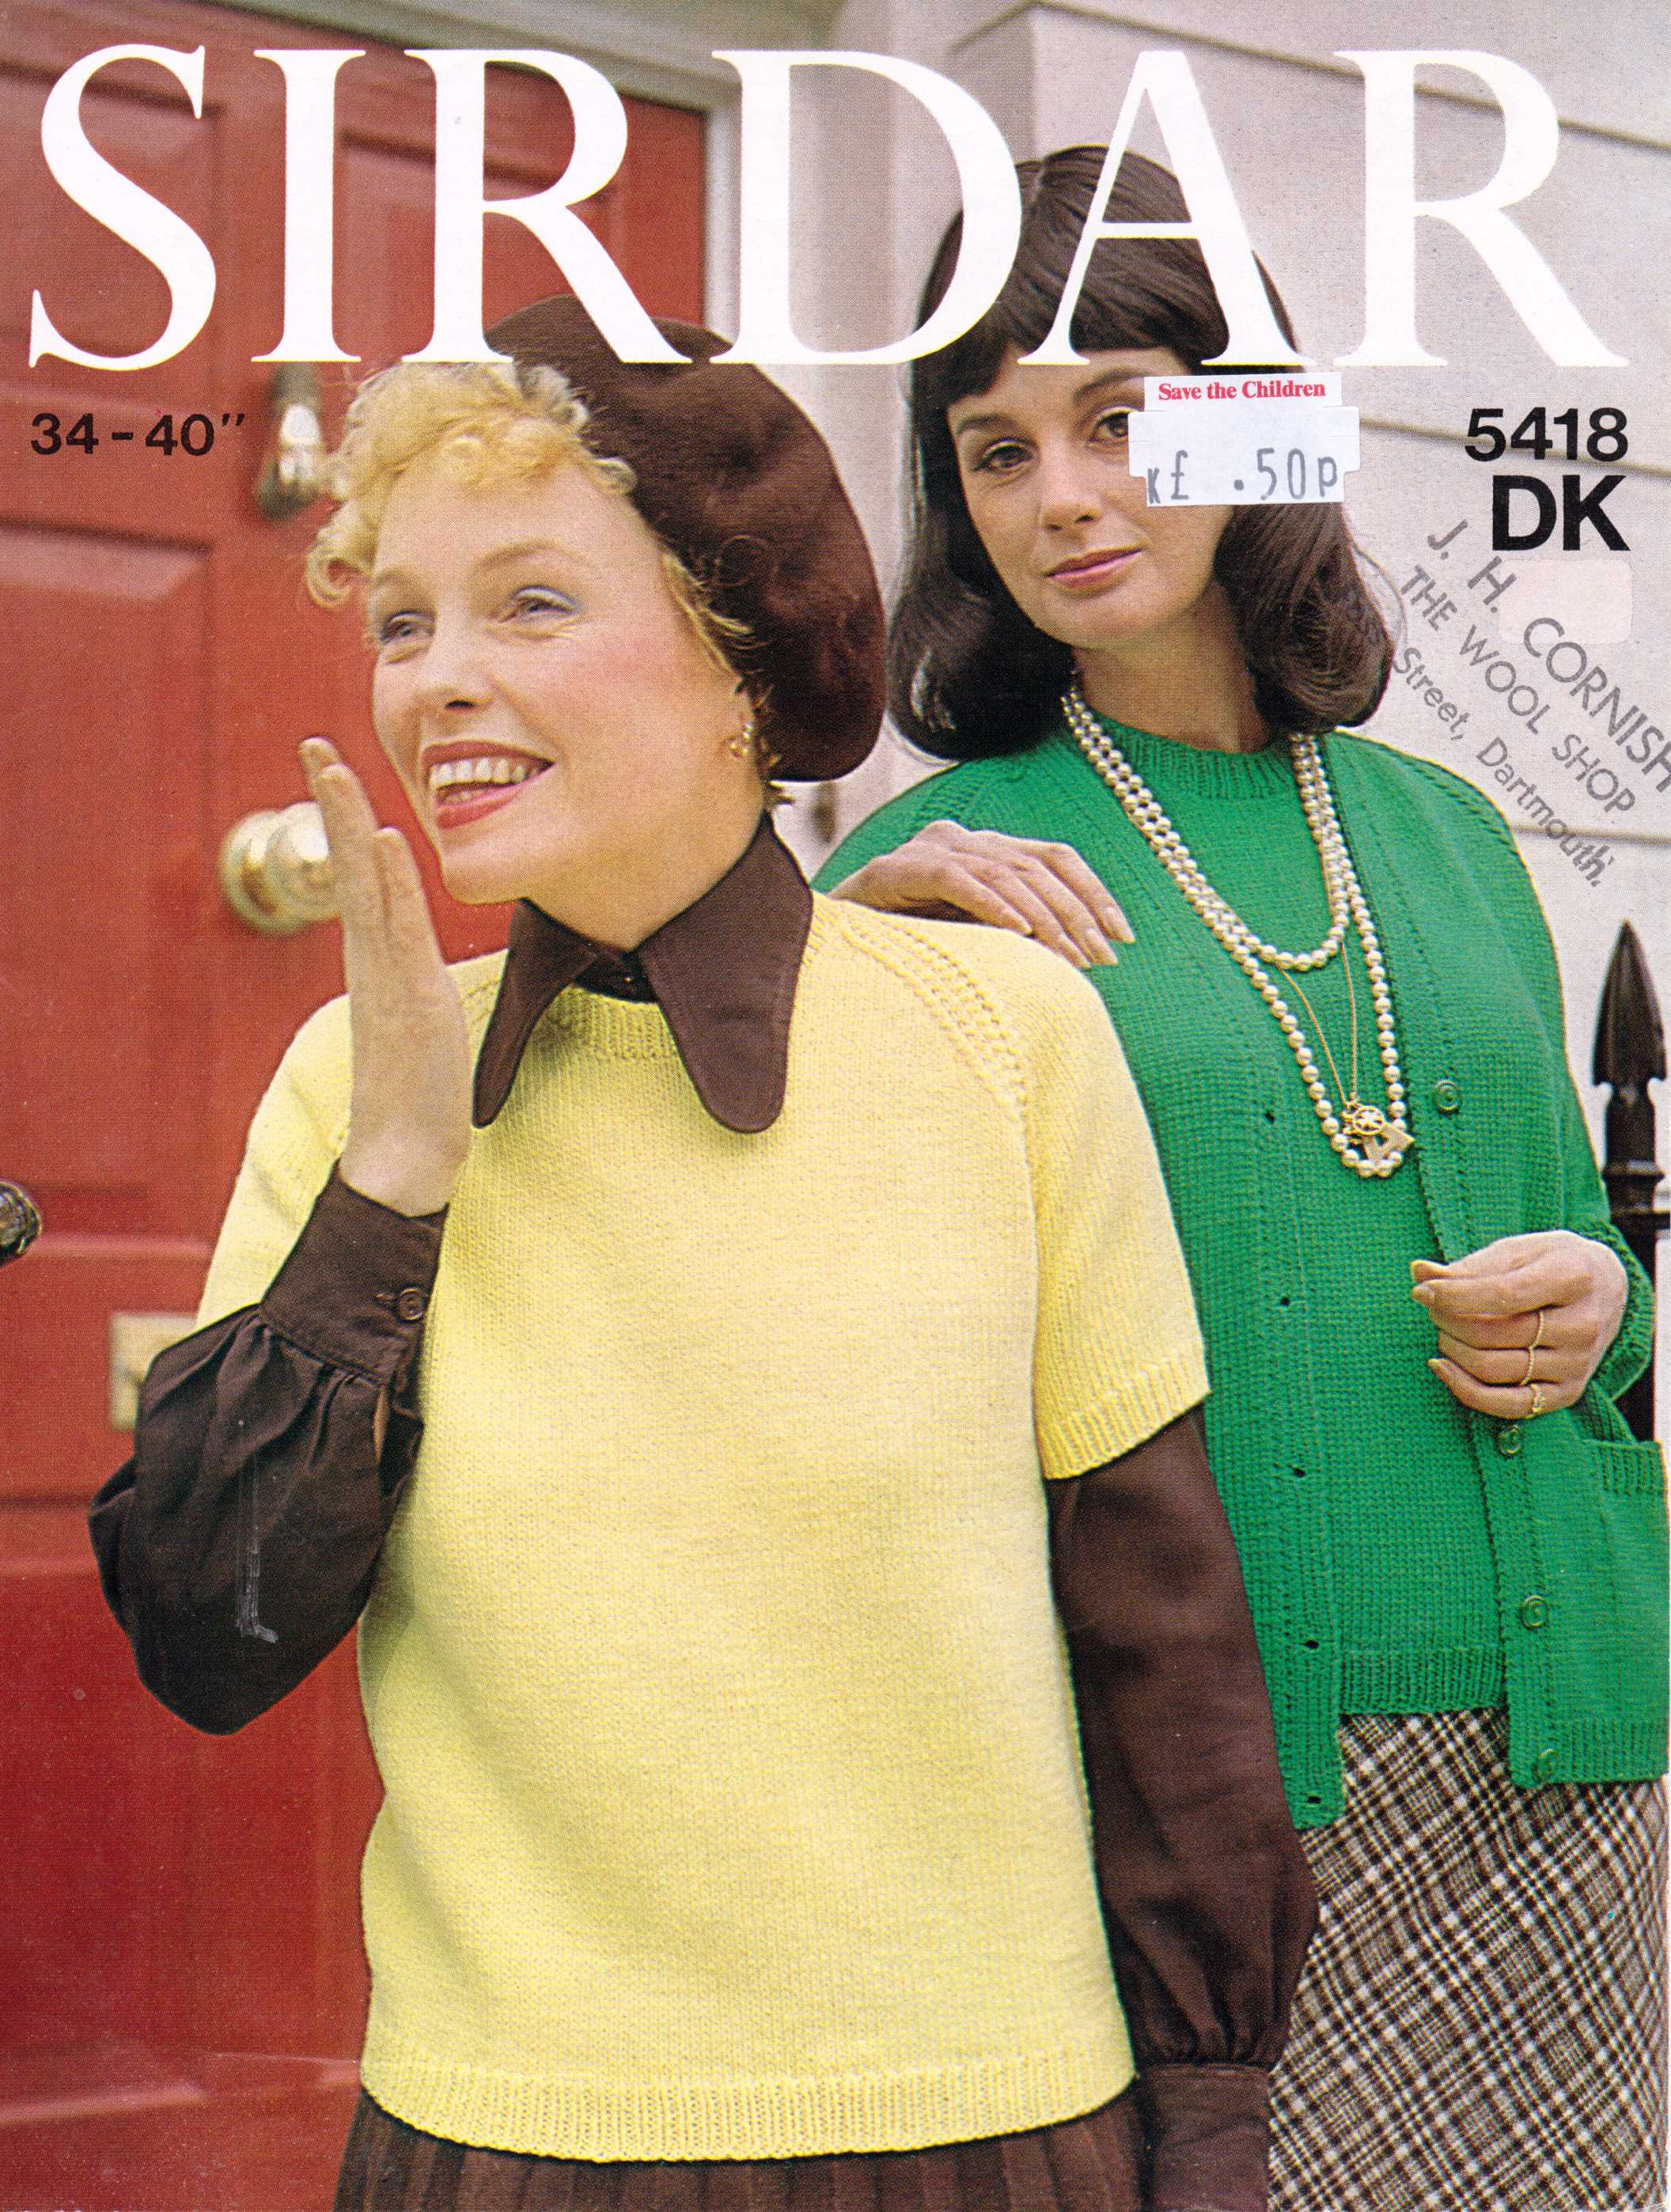 40 inch bust the sunny stitcher sidar 5418 ladies jumper free knitting pattern bankloansurffo Images